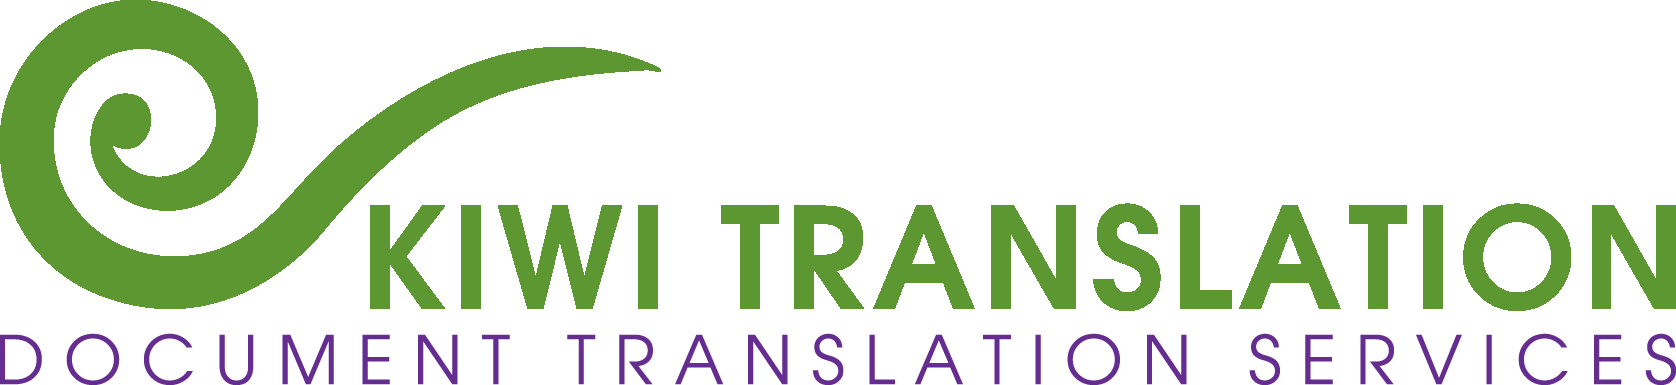 Kiwi Translation - Certified Translation Services